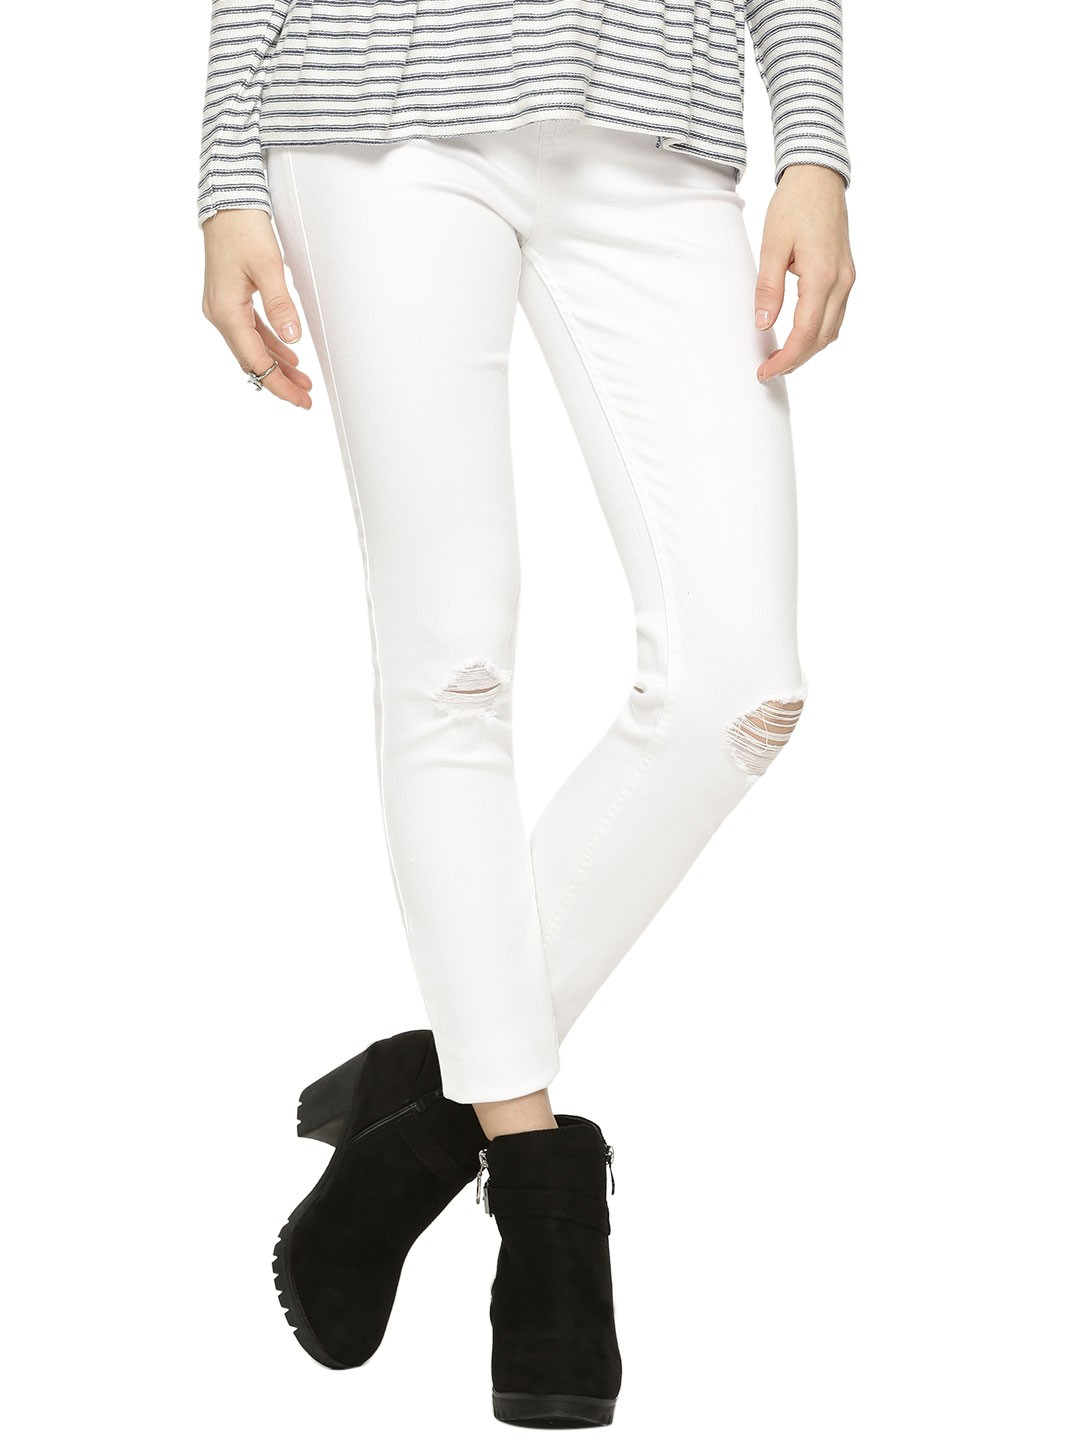 buy new look busted knee skinny jeans for women women 39 s white skinny jeans online in india. Black Bedroom Furniture Sets. Home Design Ideas